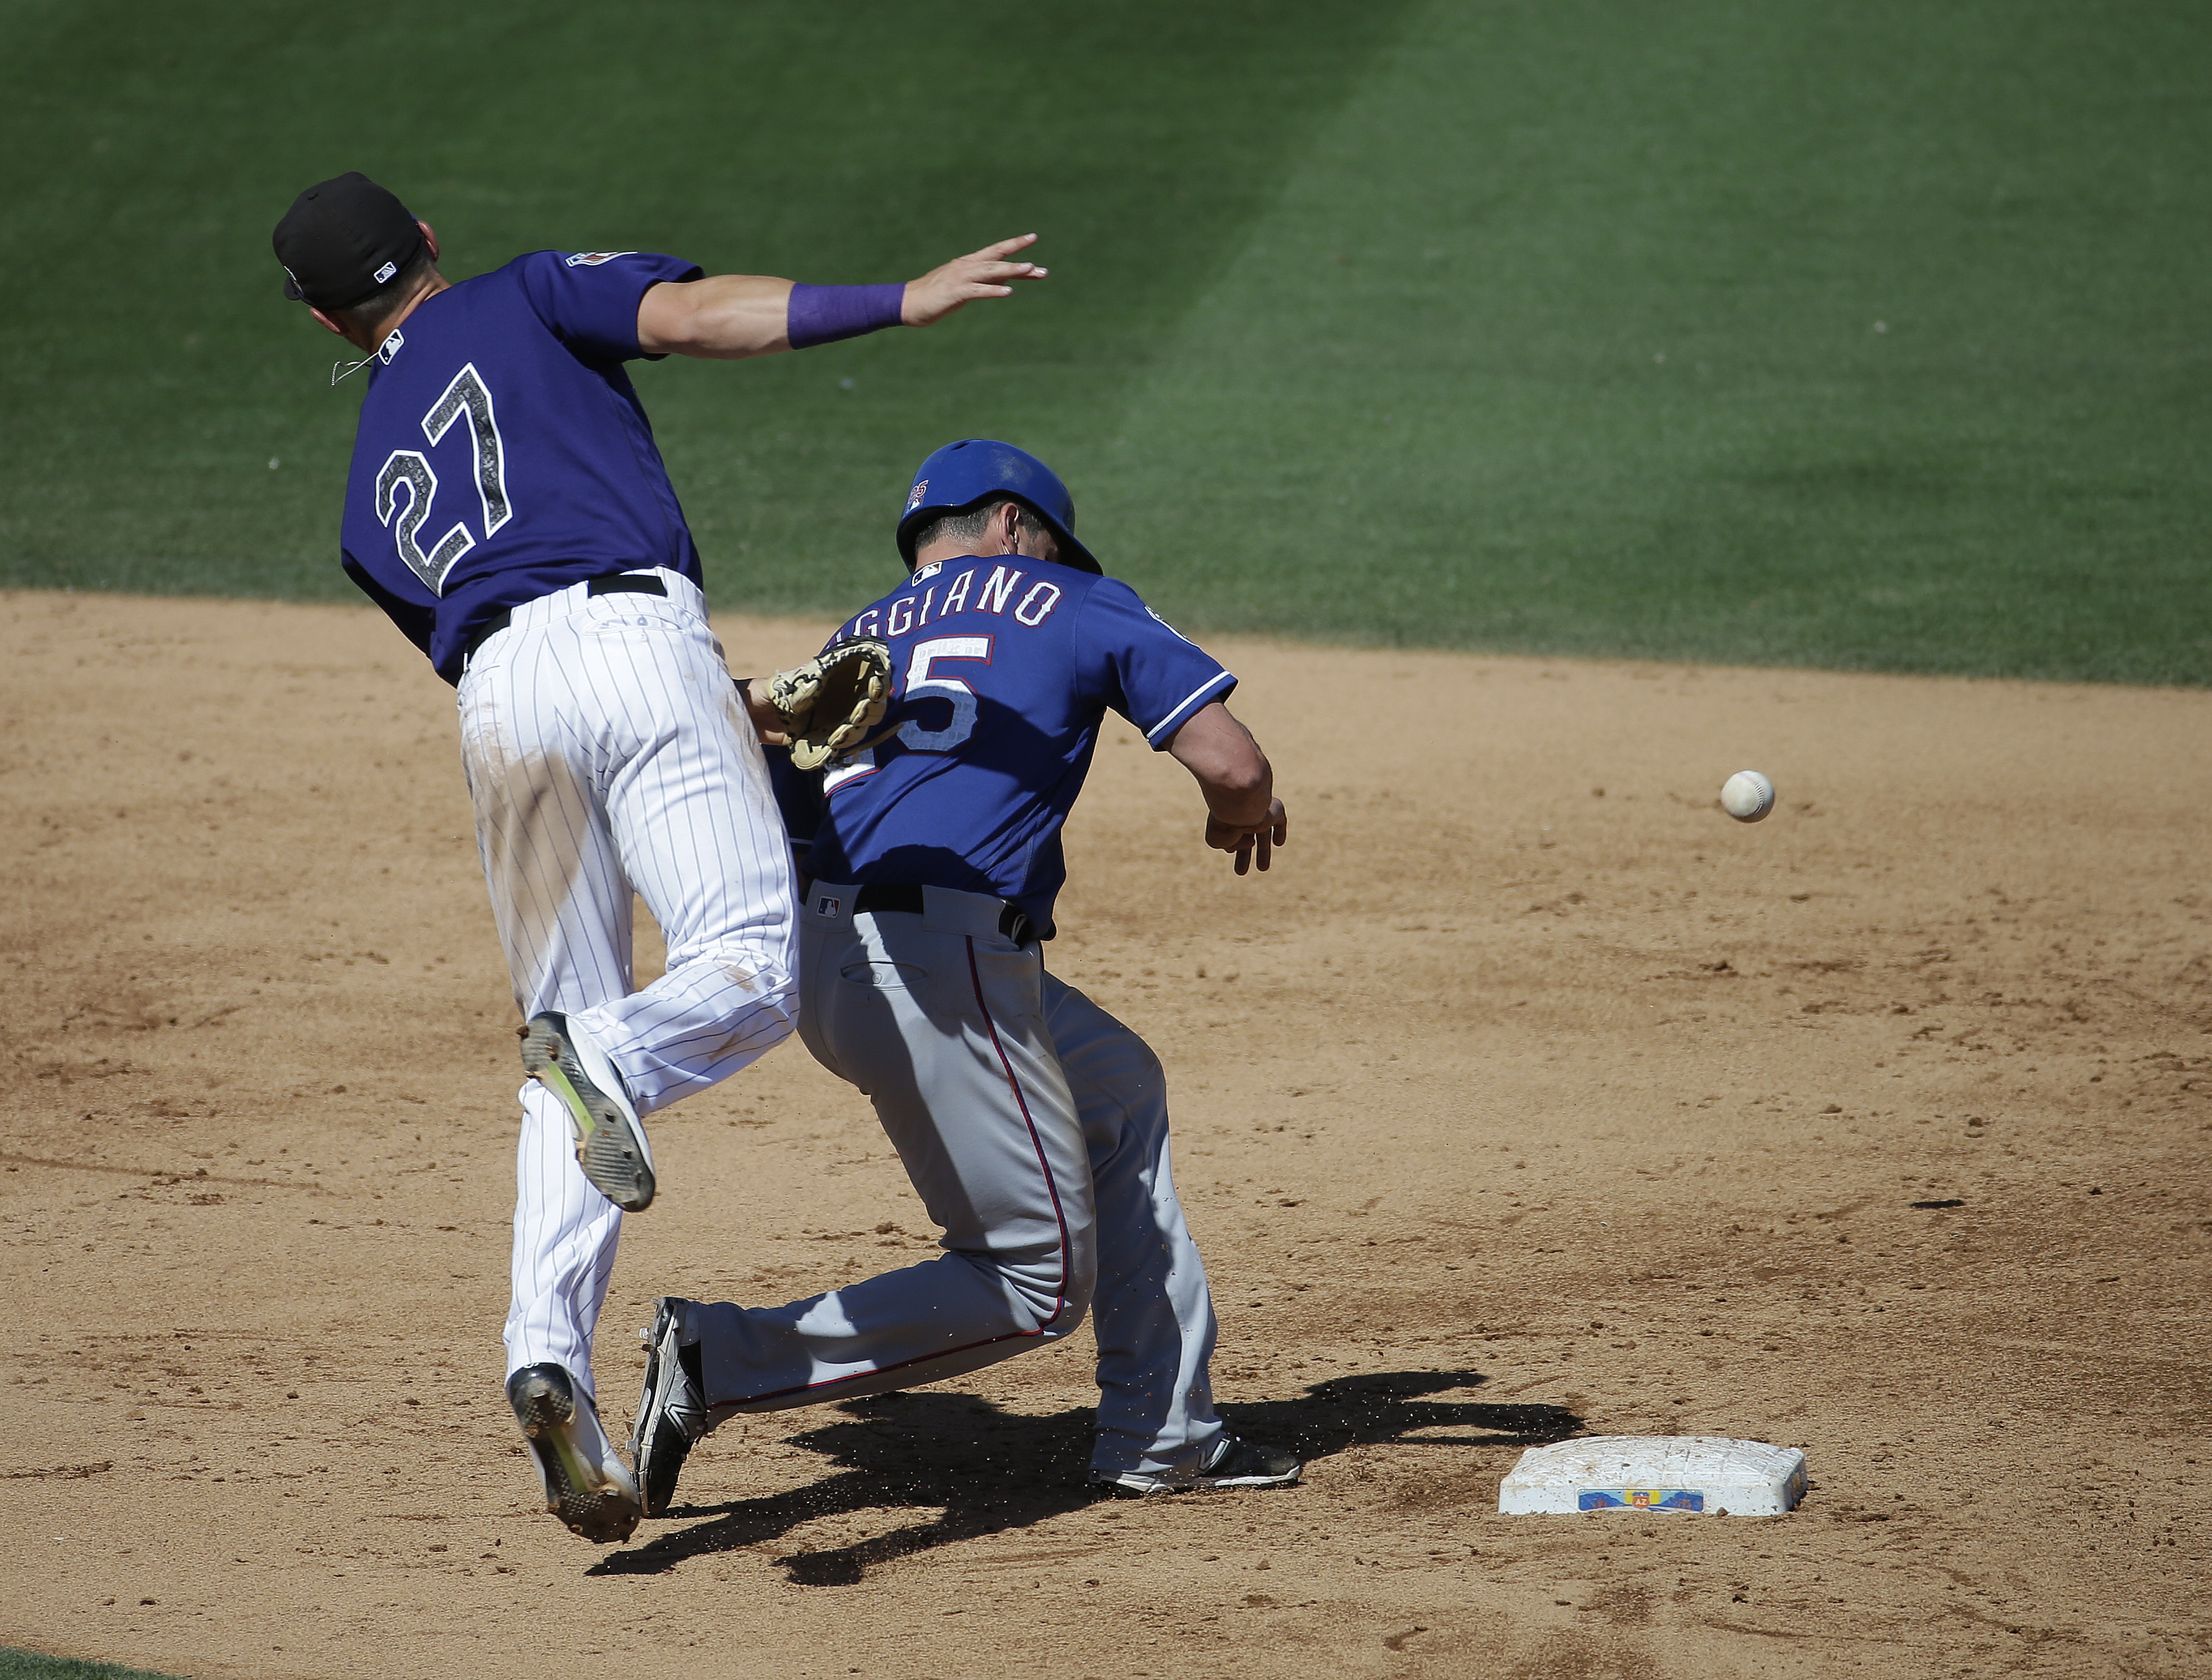 Colorado Rockies' Trevor Story (27) cannot catch a ball thrown by catcher Nick Hundley as Texas Rangers' Justin Ruggiano, right, runs back to second during the sixth inning of a spring training baseball game Saturday, March 26, 2016, in Scottsdale, Ariz.